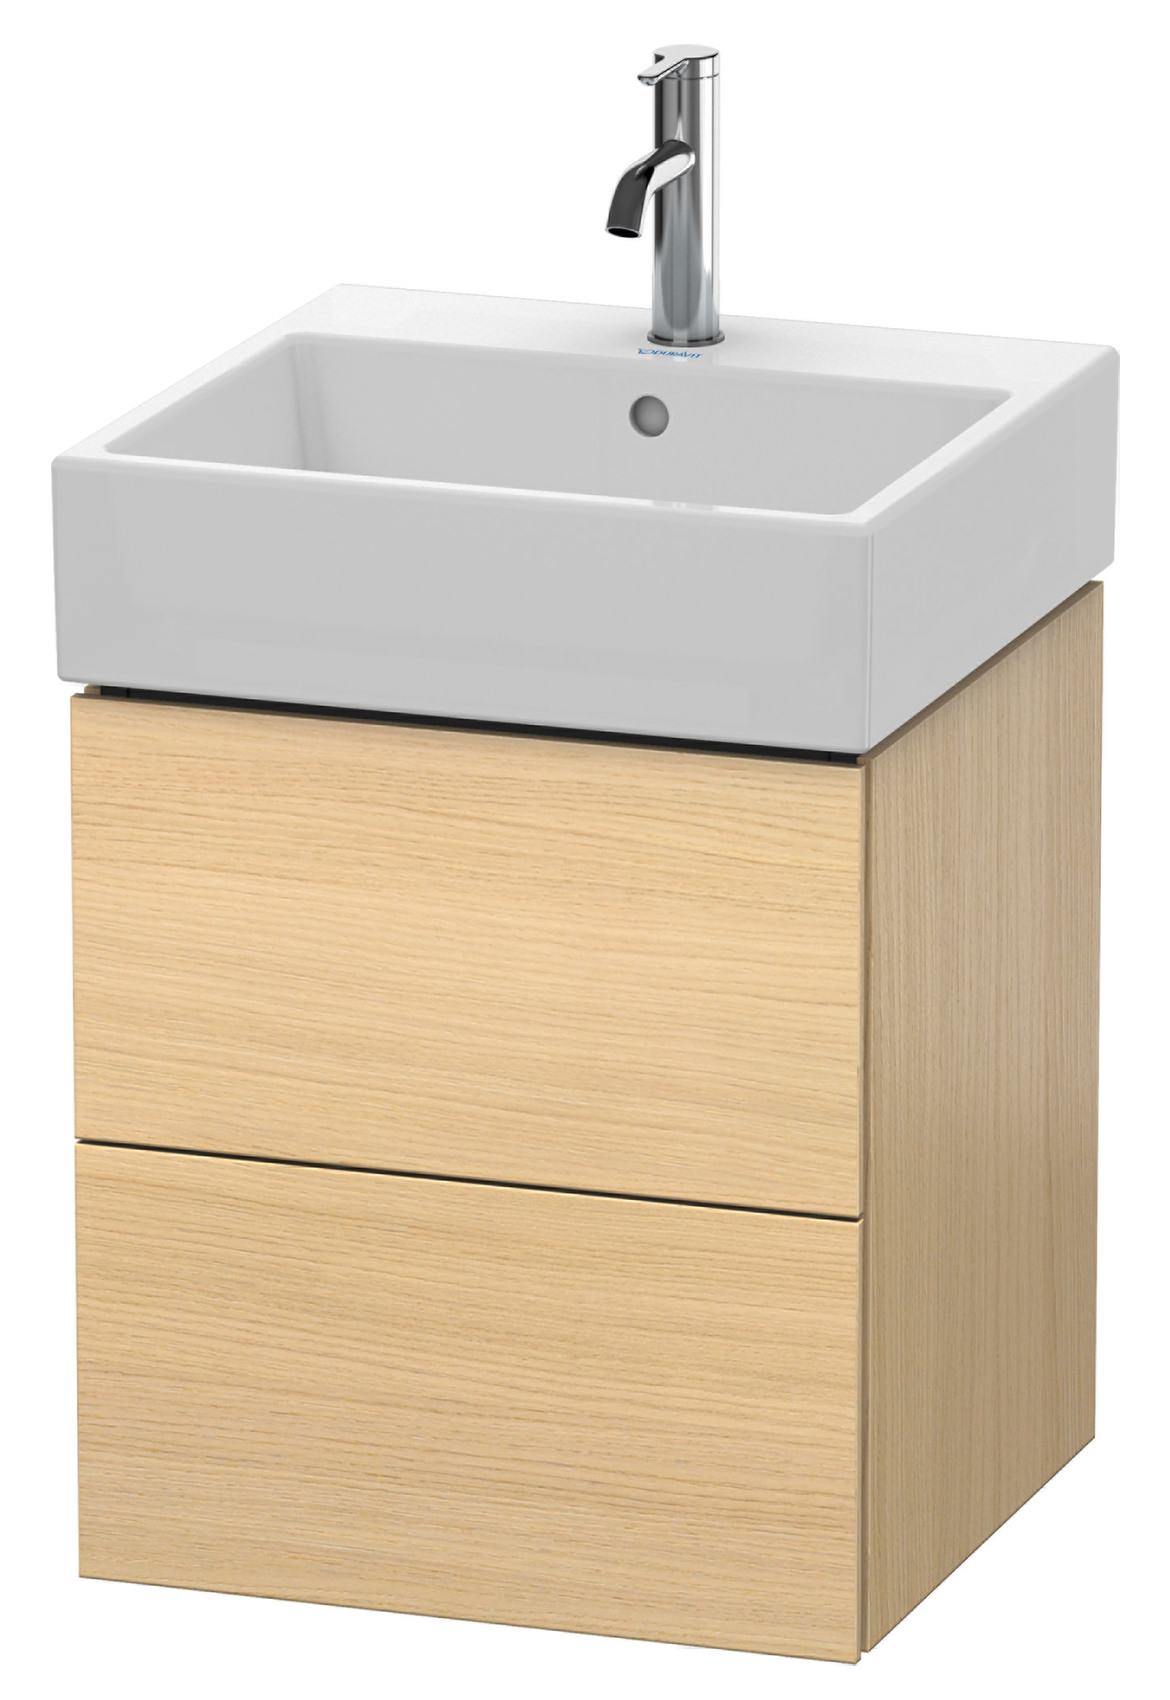 duravit l cube 484mm 2 drawer vanity unit with vero air basin. Black Bedroom Furniture Sets. Home Design Ideas